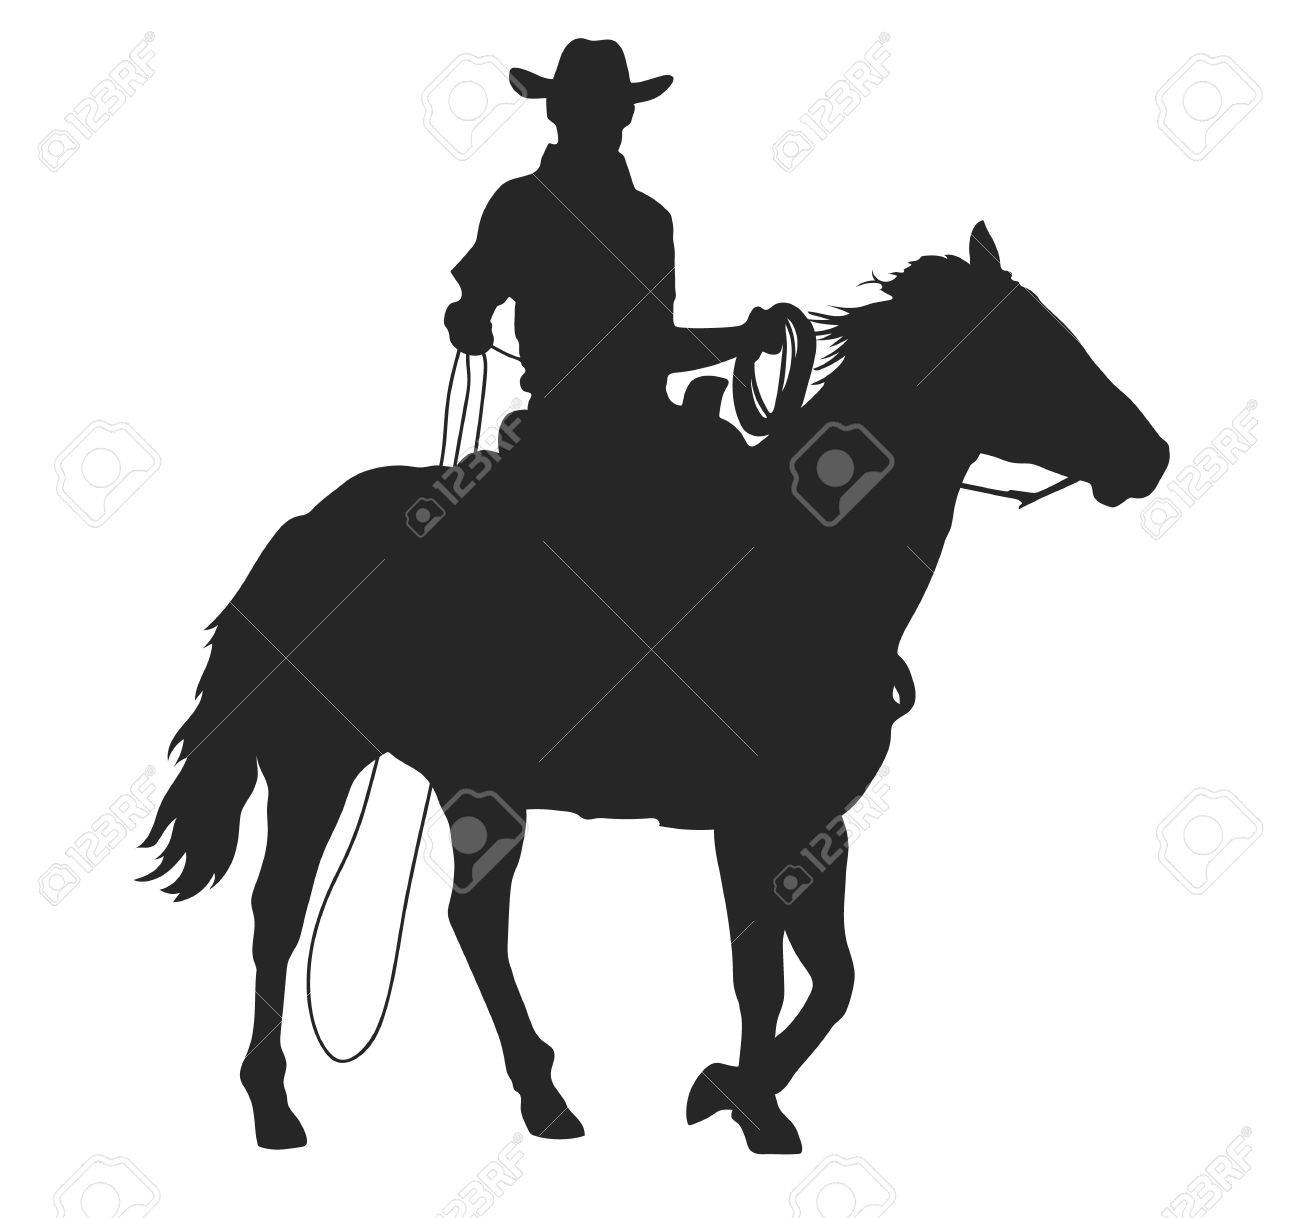 Cowboy With Lasso Riding A Horse Isolated Vector Silhouette Royalty Free Cliparts Vectors And Stock Illustration Image 85029993